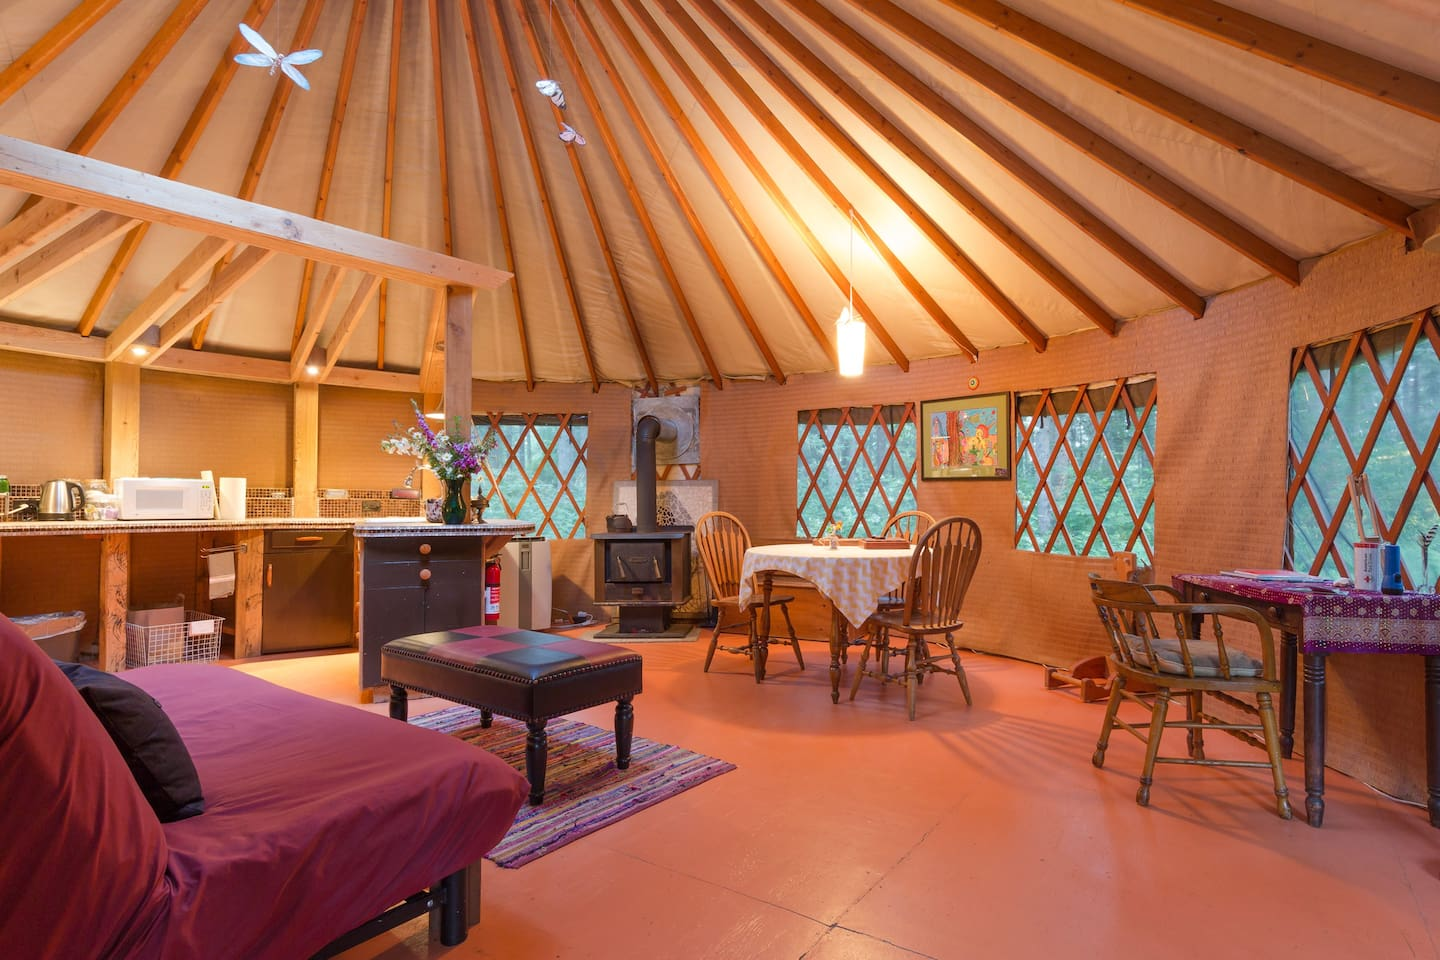 The average cost to stay in this yurt is $112